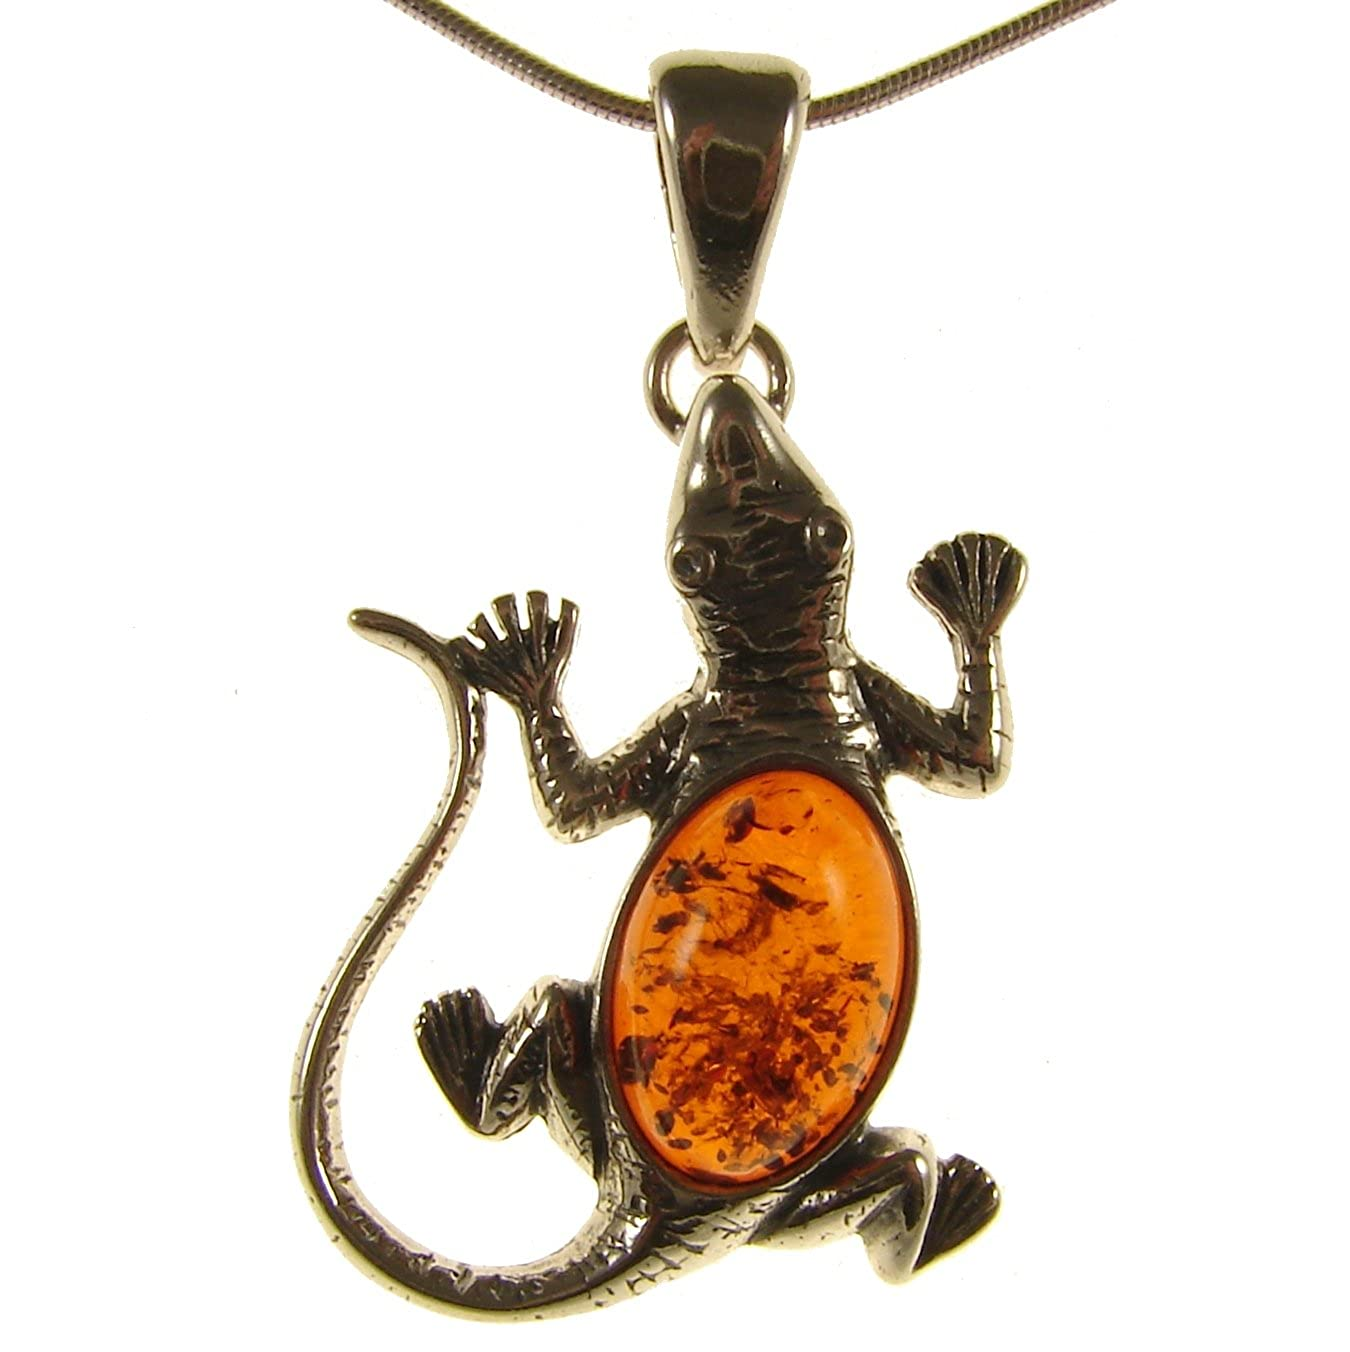 BALTIC AMBER AND STERLING SILVER 925 LIZARD PENDANT NECKLACE 14 16 18 20 22 24 26 28 30 32 34 1mm ITALIAN SNAKE CHAIN